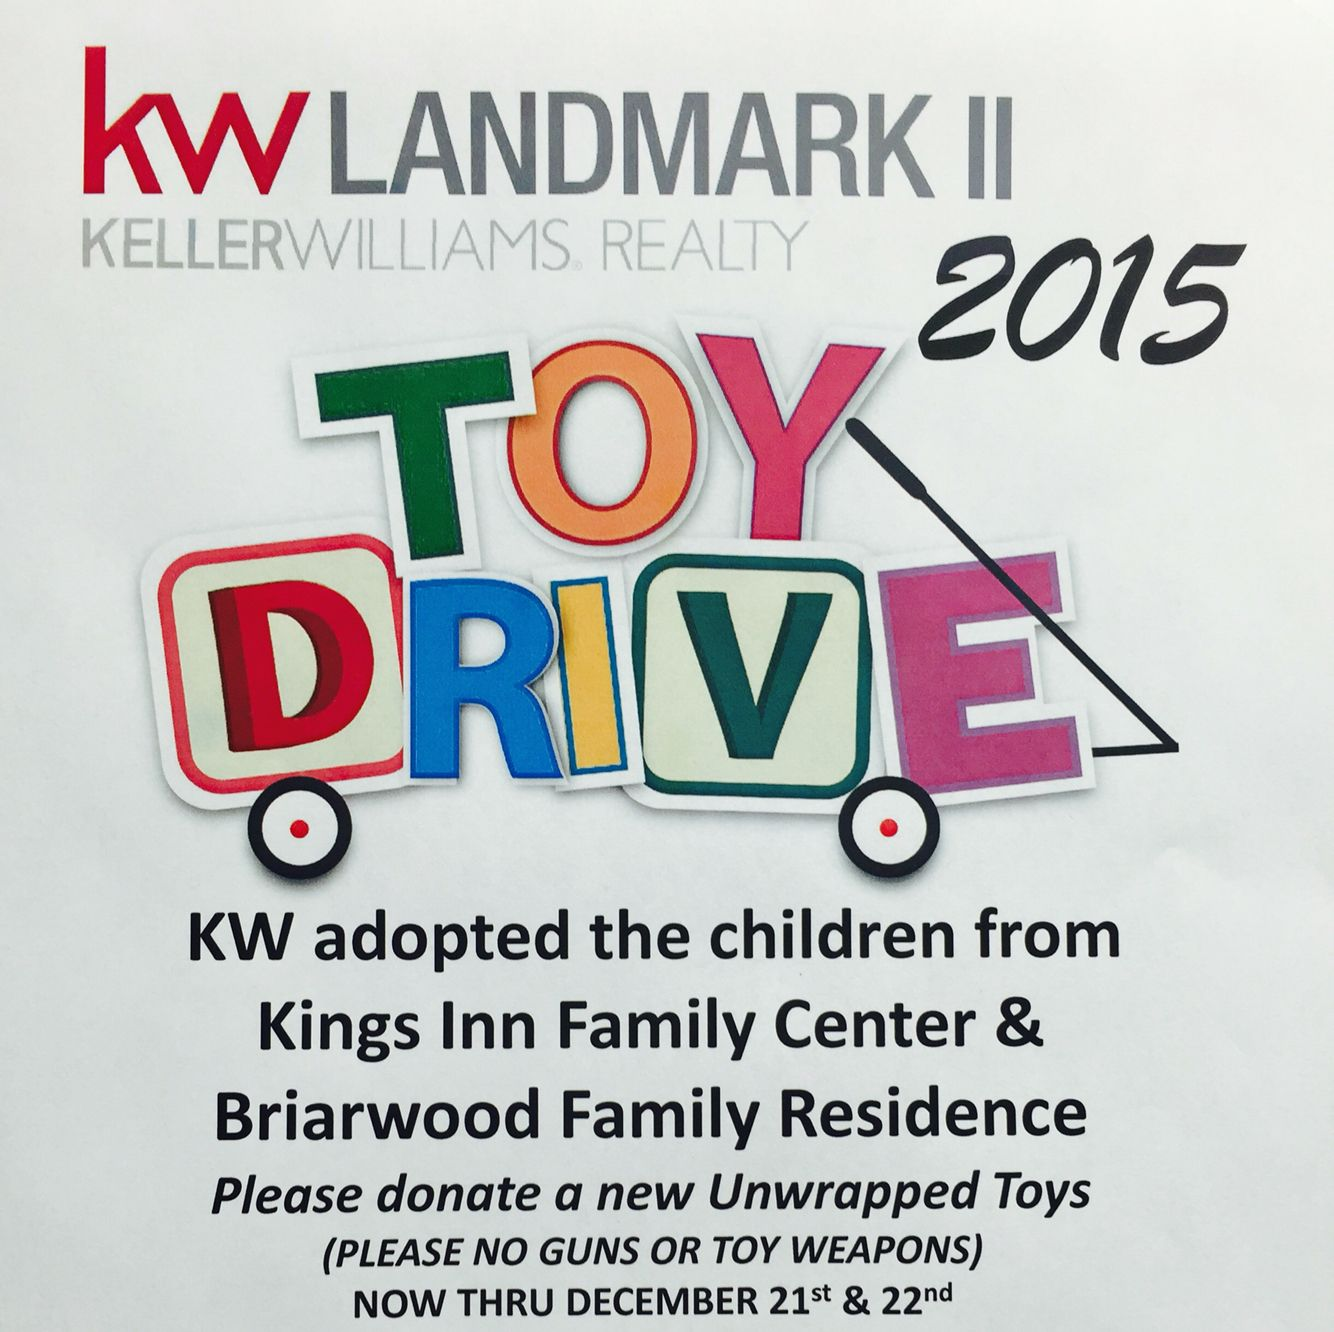 Toys for kids logo  Hey guys Our Office is having a toy drive for kids from the Kings